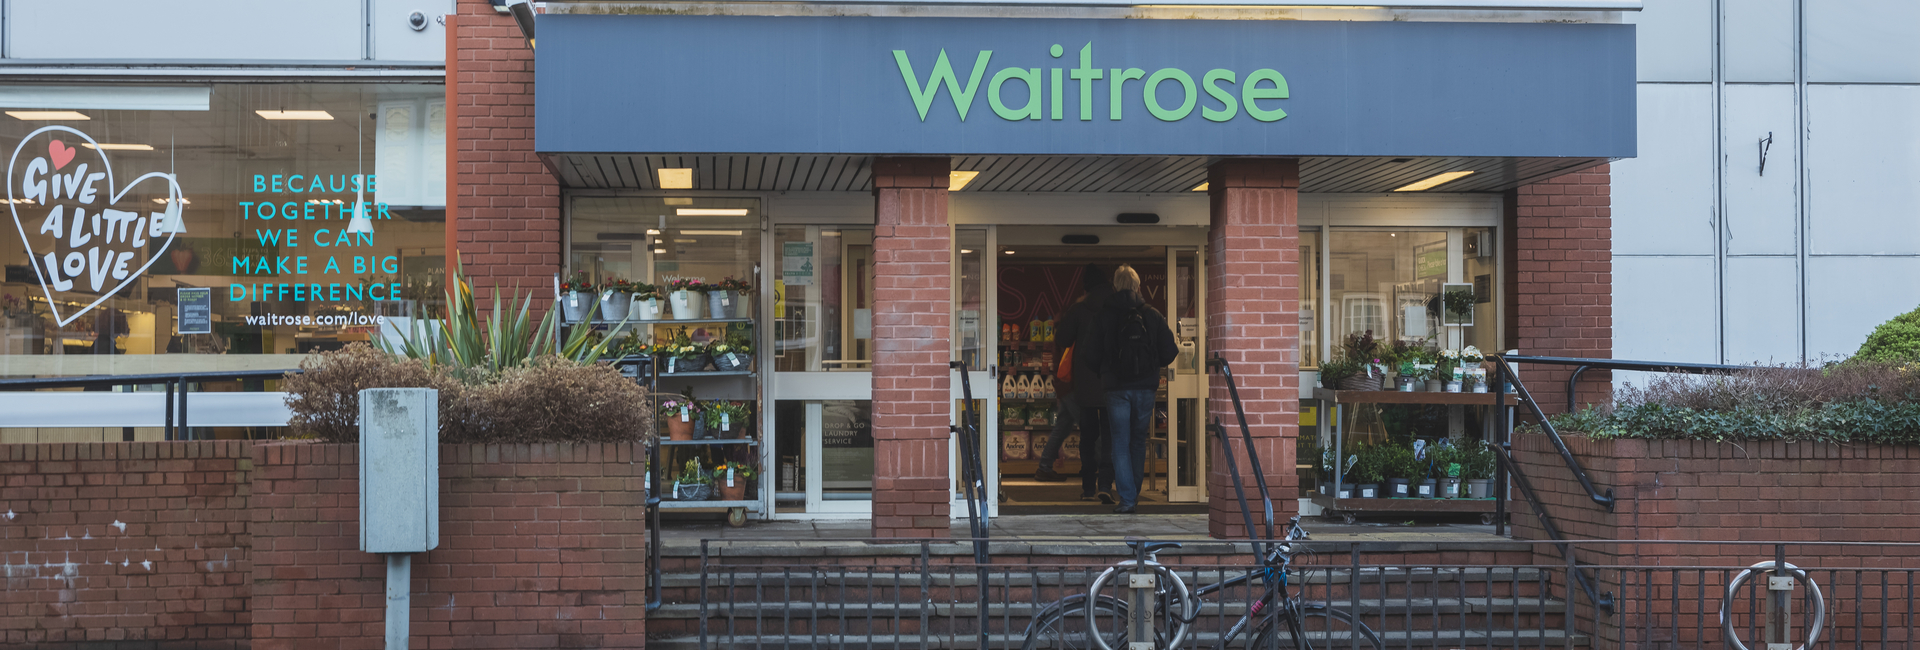 the front of the Waitrose store in Edinburgh